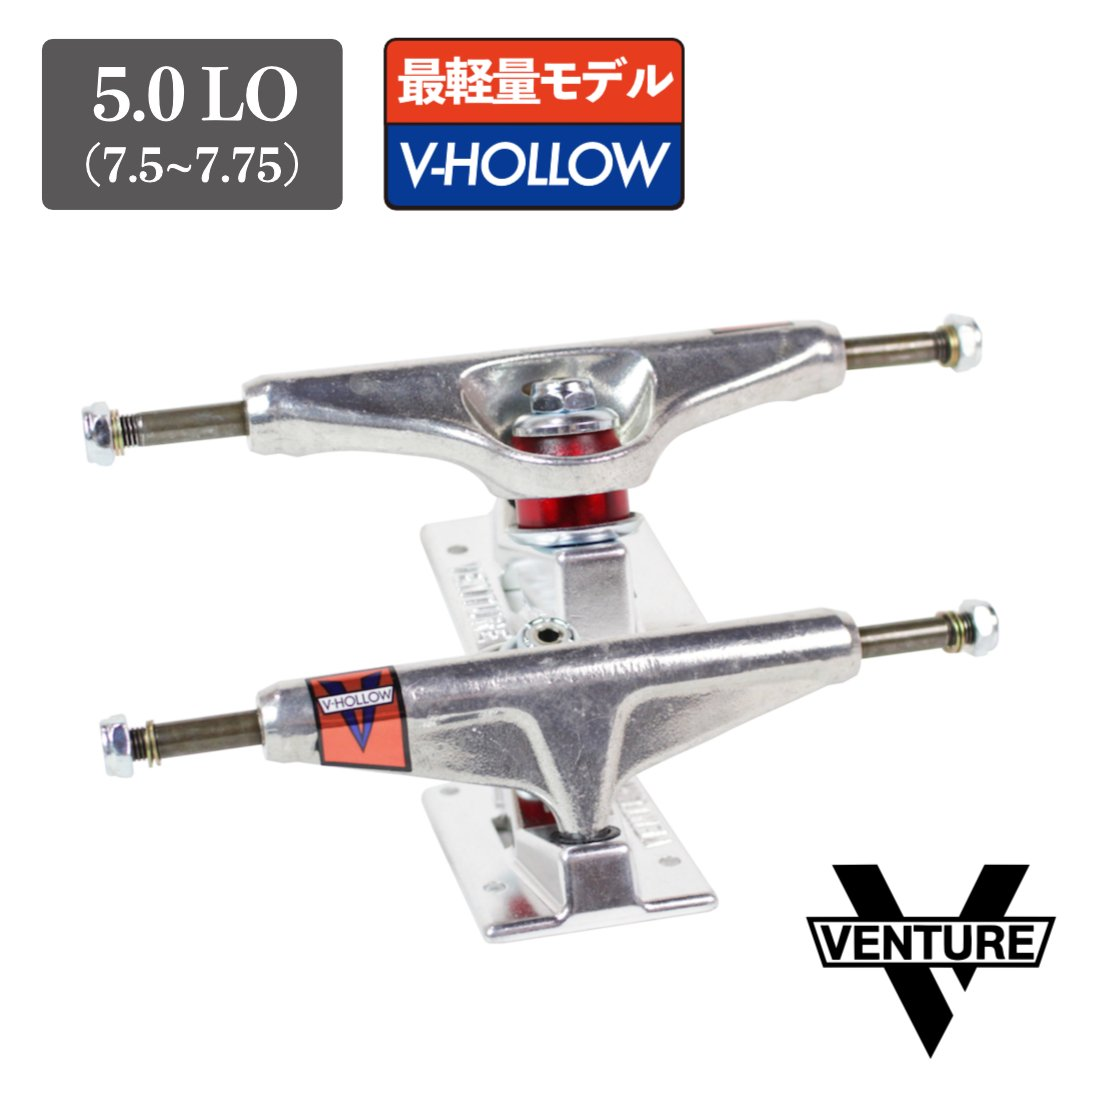 【VENTURE】V-Hollow Lights - 5.0 LO